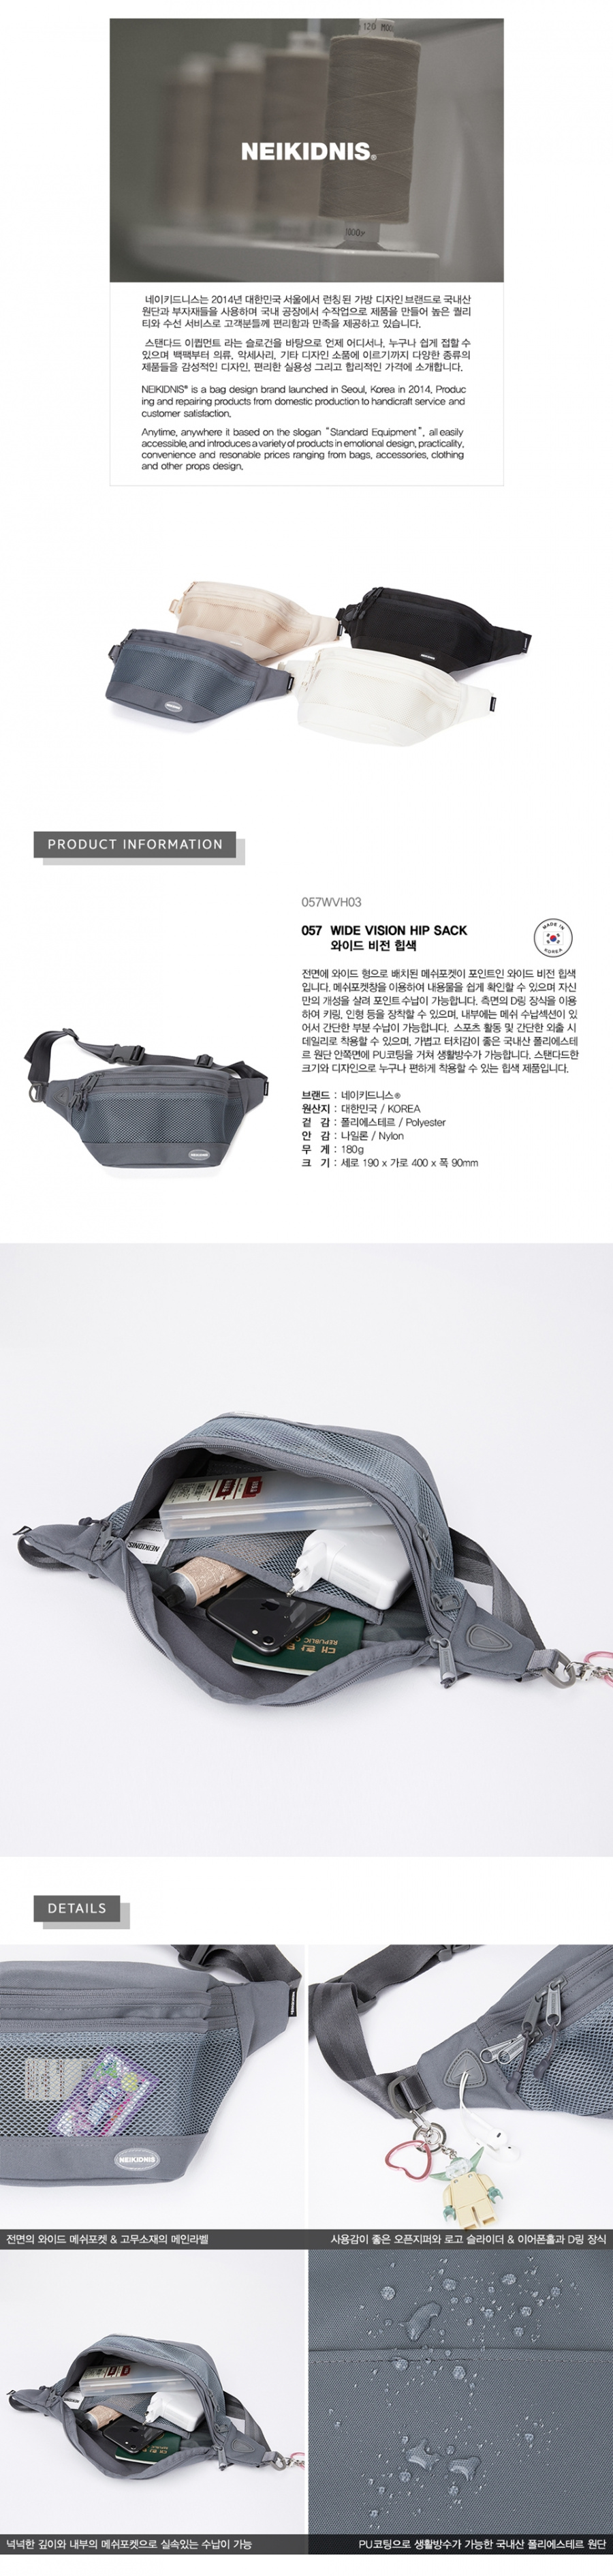 네이키드니스(NEIKIDNIS) WIDE VISION HIP SACK / CHARCOAL